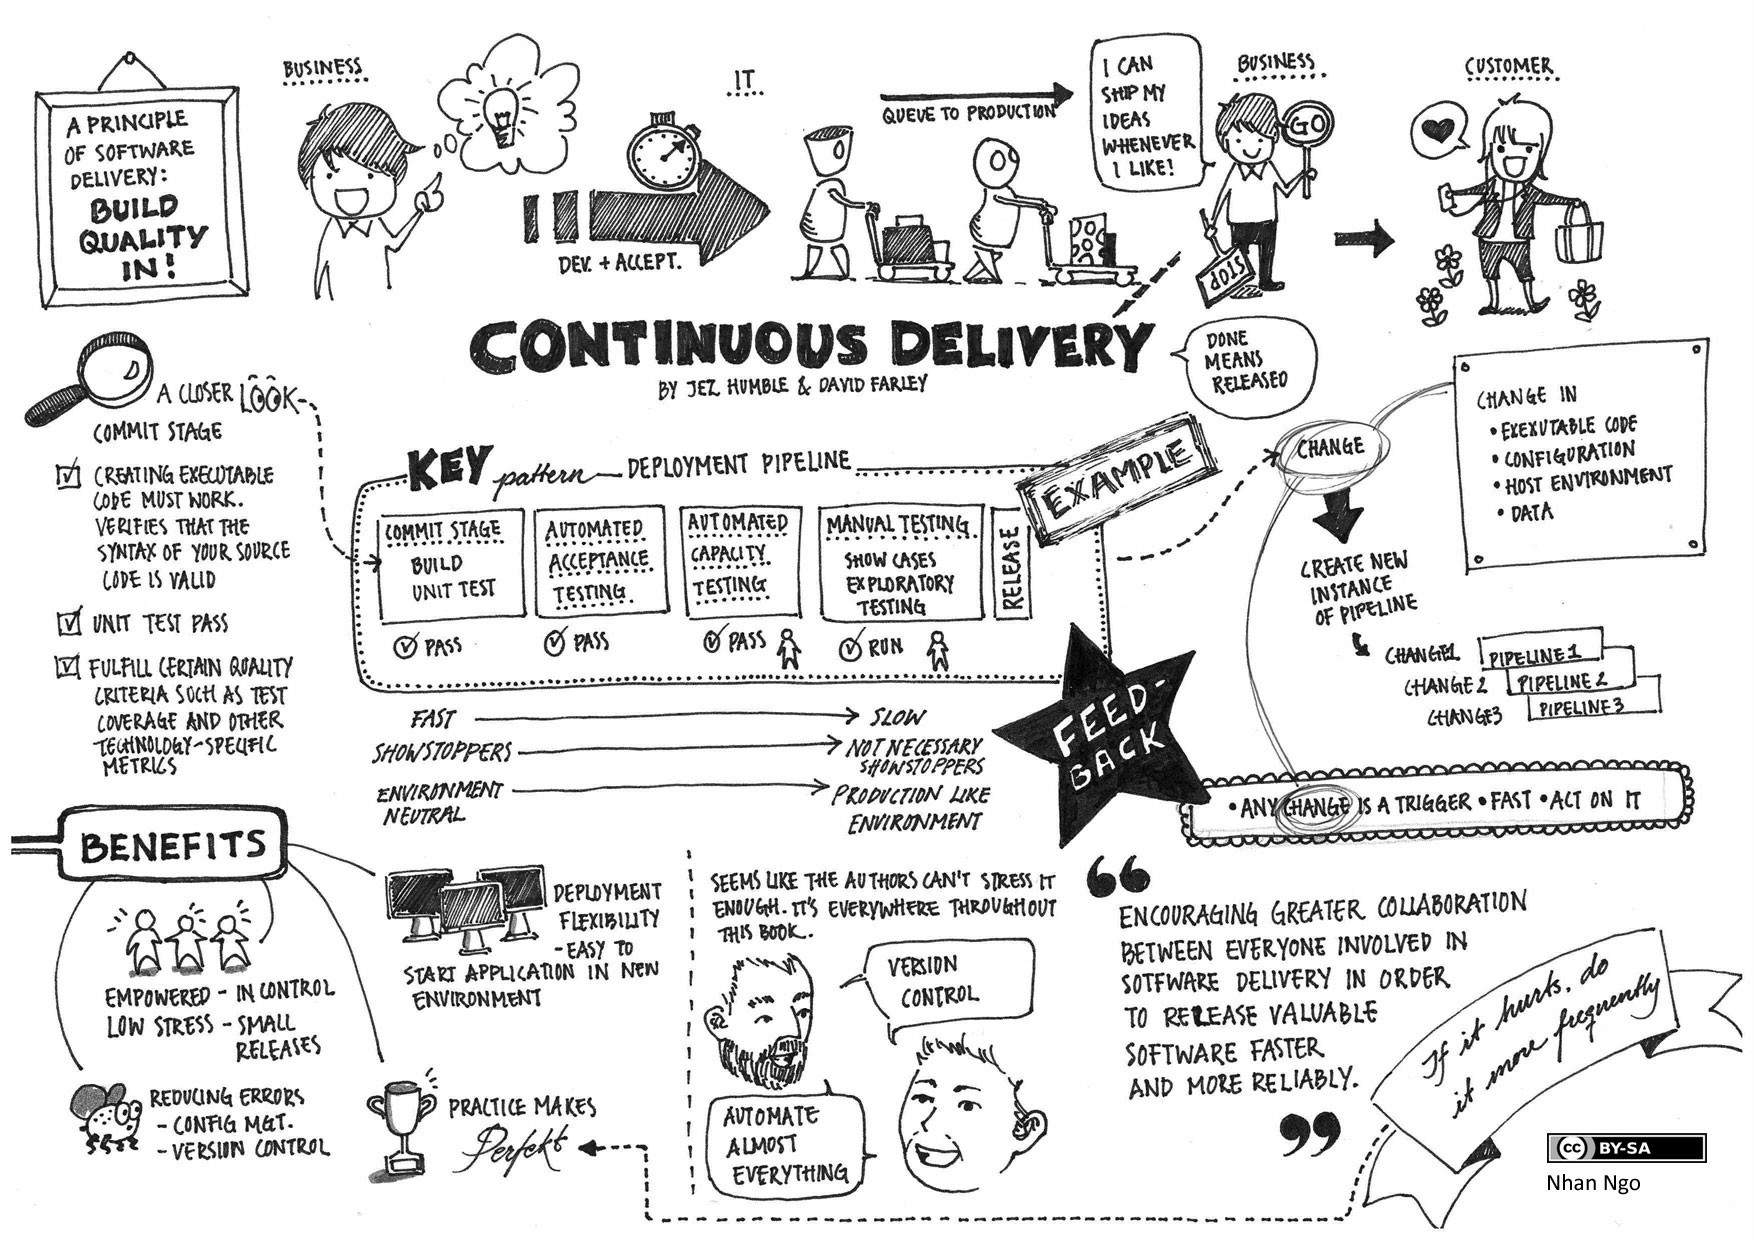 Continuous Delivery in a nutshell helping in faster software release